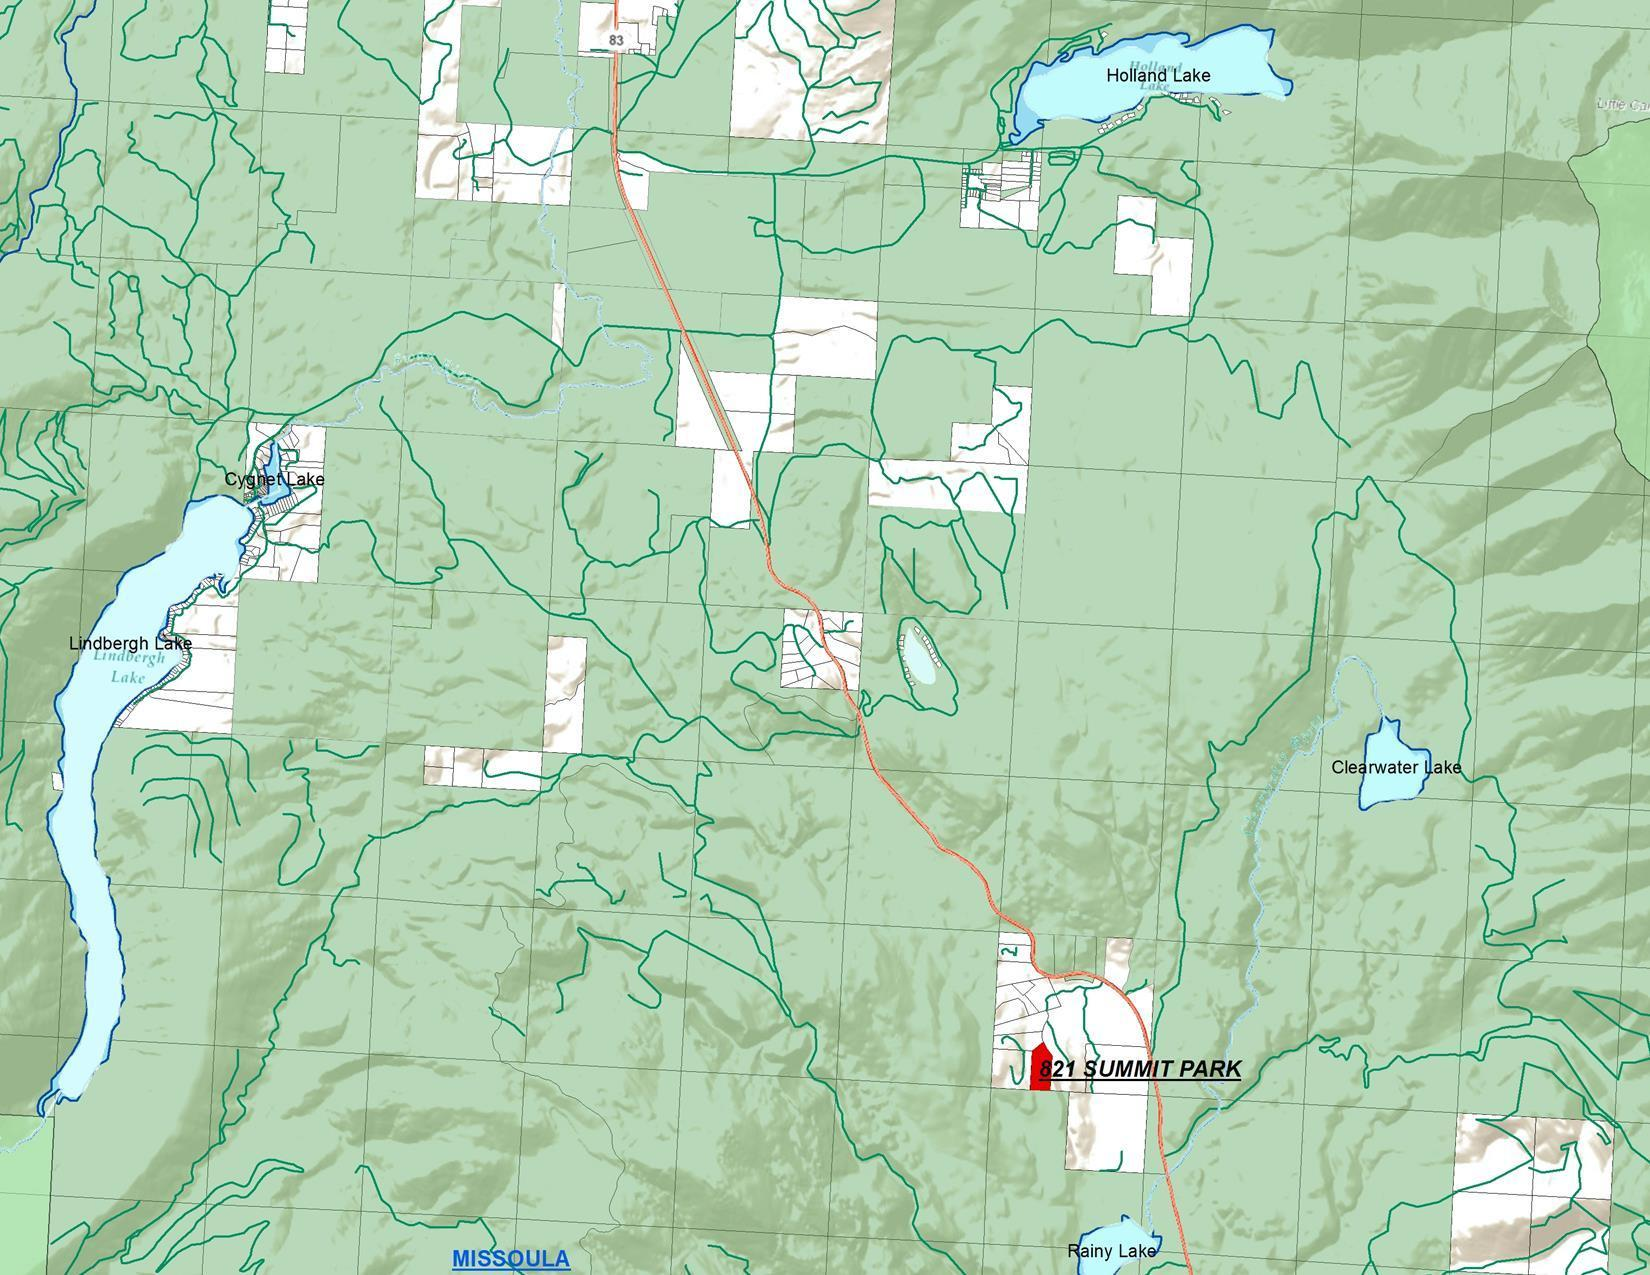 Swan Valley Montana Map.821 Summit Park Condon Mt 59826 Mls 21809761 Condon Real Estate